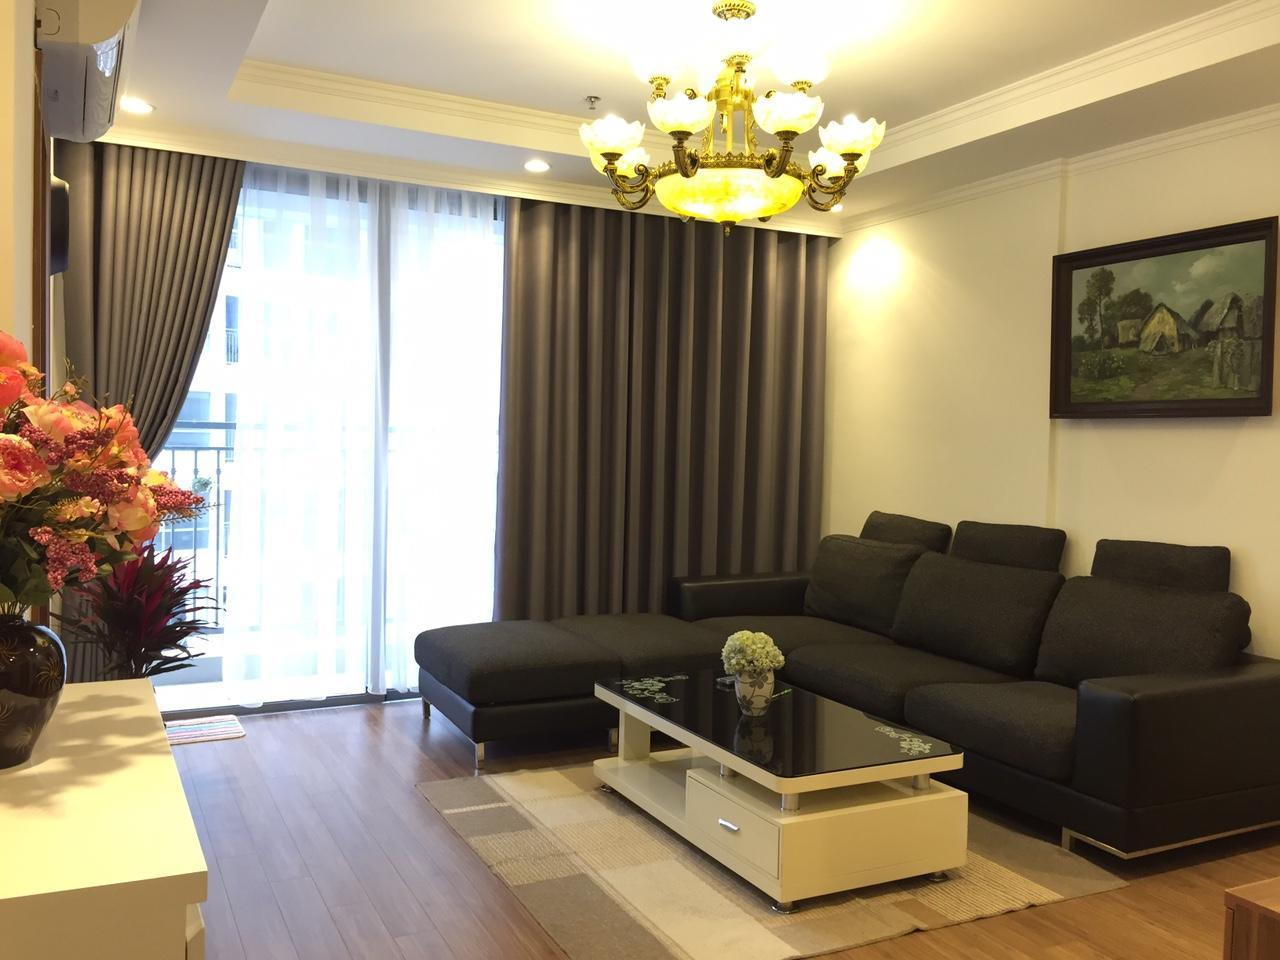 2-Bedroom Suite with 1 Queen Bed, 2 Double Beds and 2 Bathrooms - Non-Smoking (2Bedroom Suite 1 Queen 2 Double 2Bath Non-Smoking)